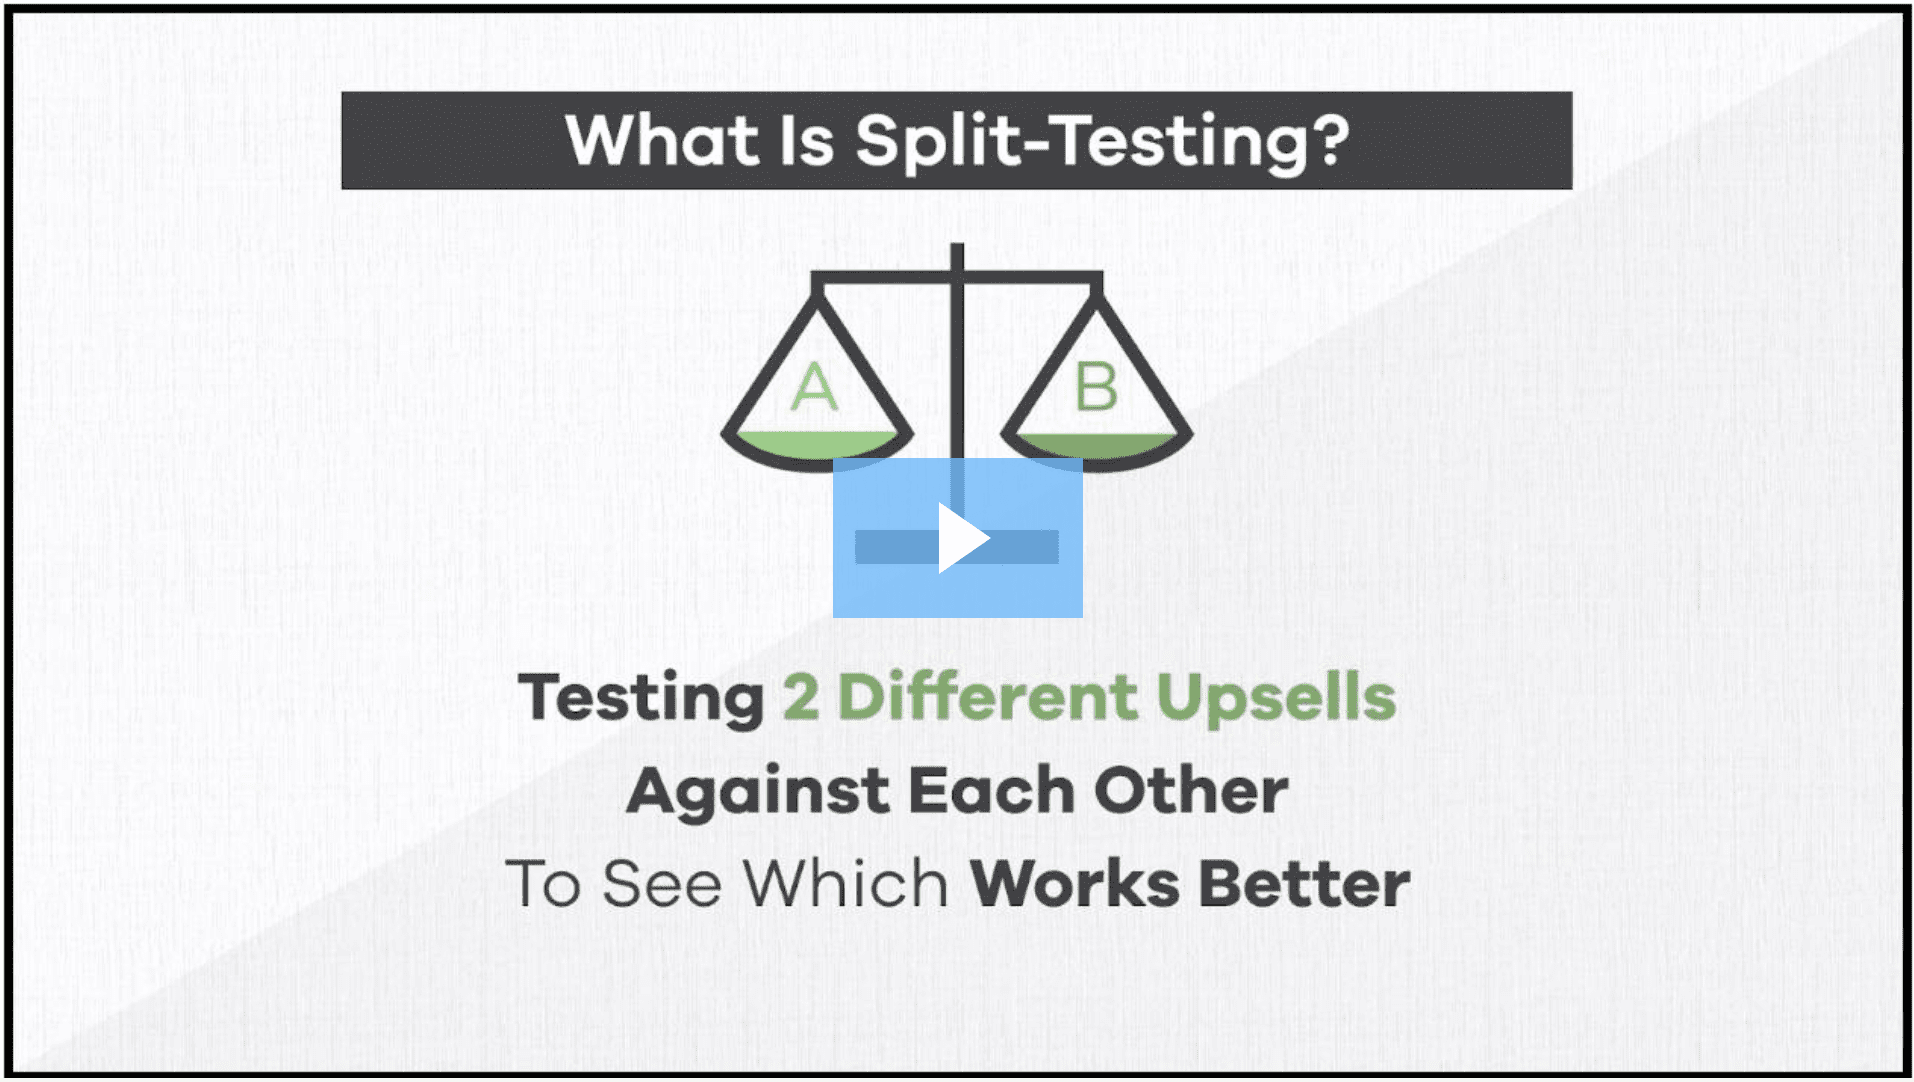 Testing 2 Different upsells against each other